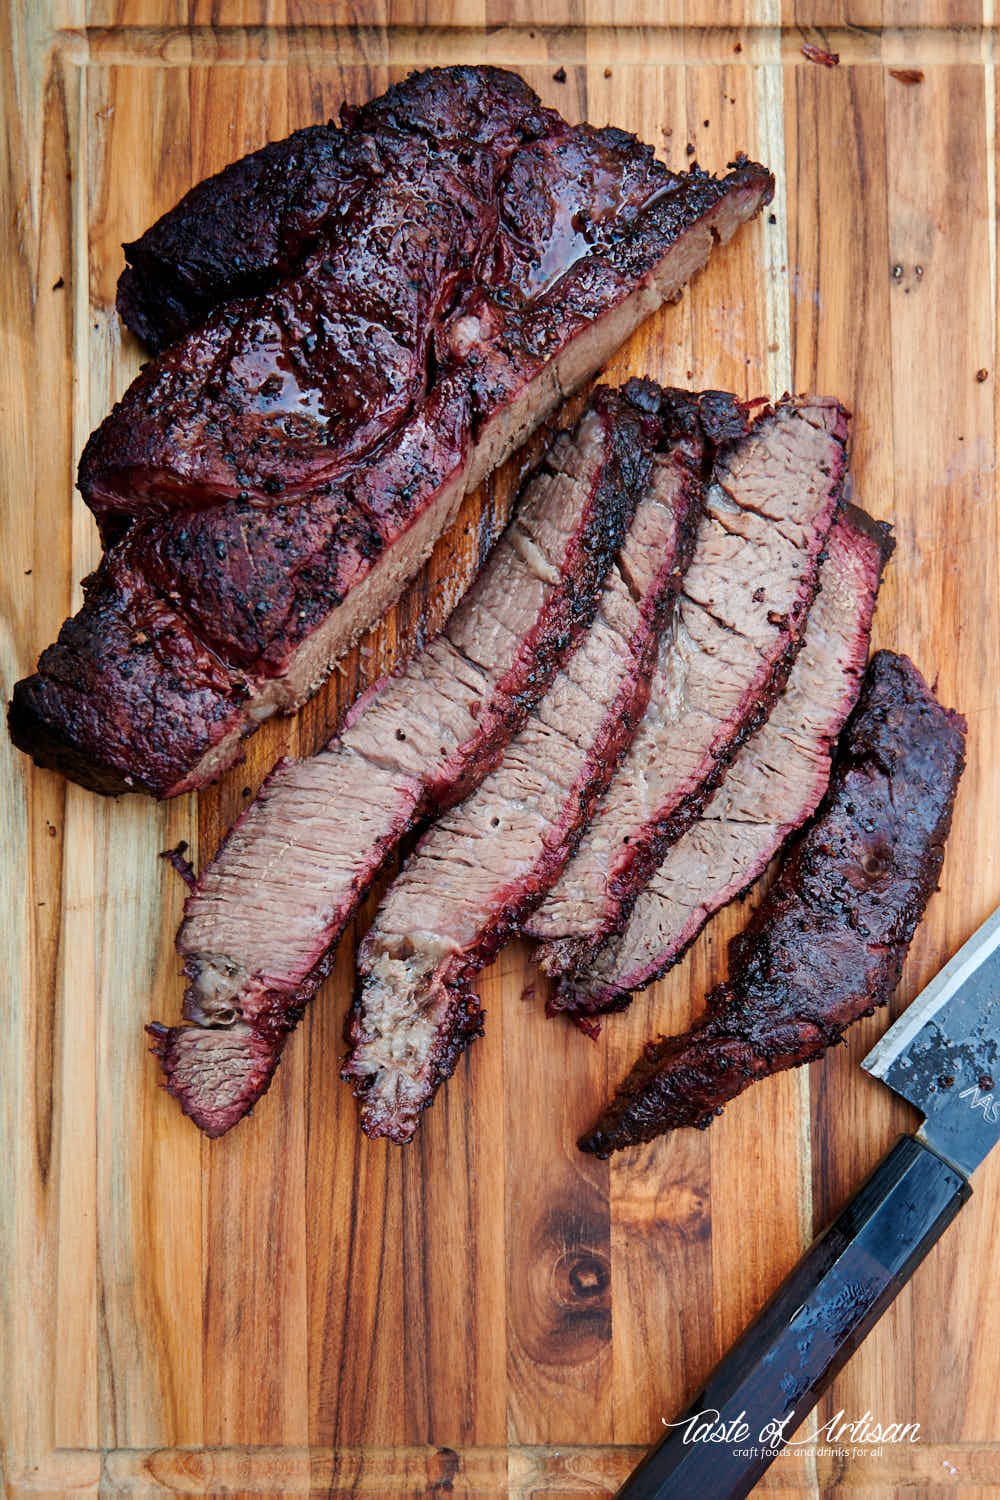 Juicy smoked chuck roast sliced on a cutting board.